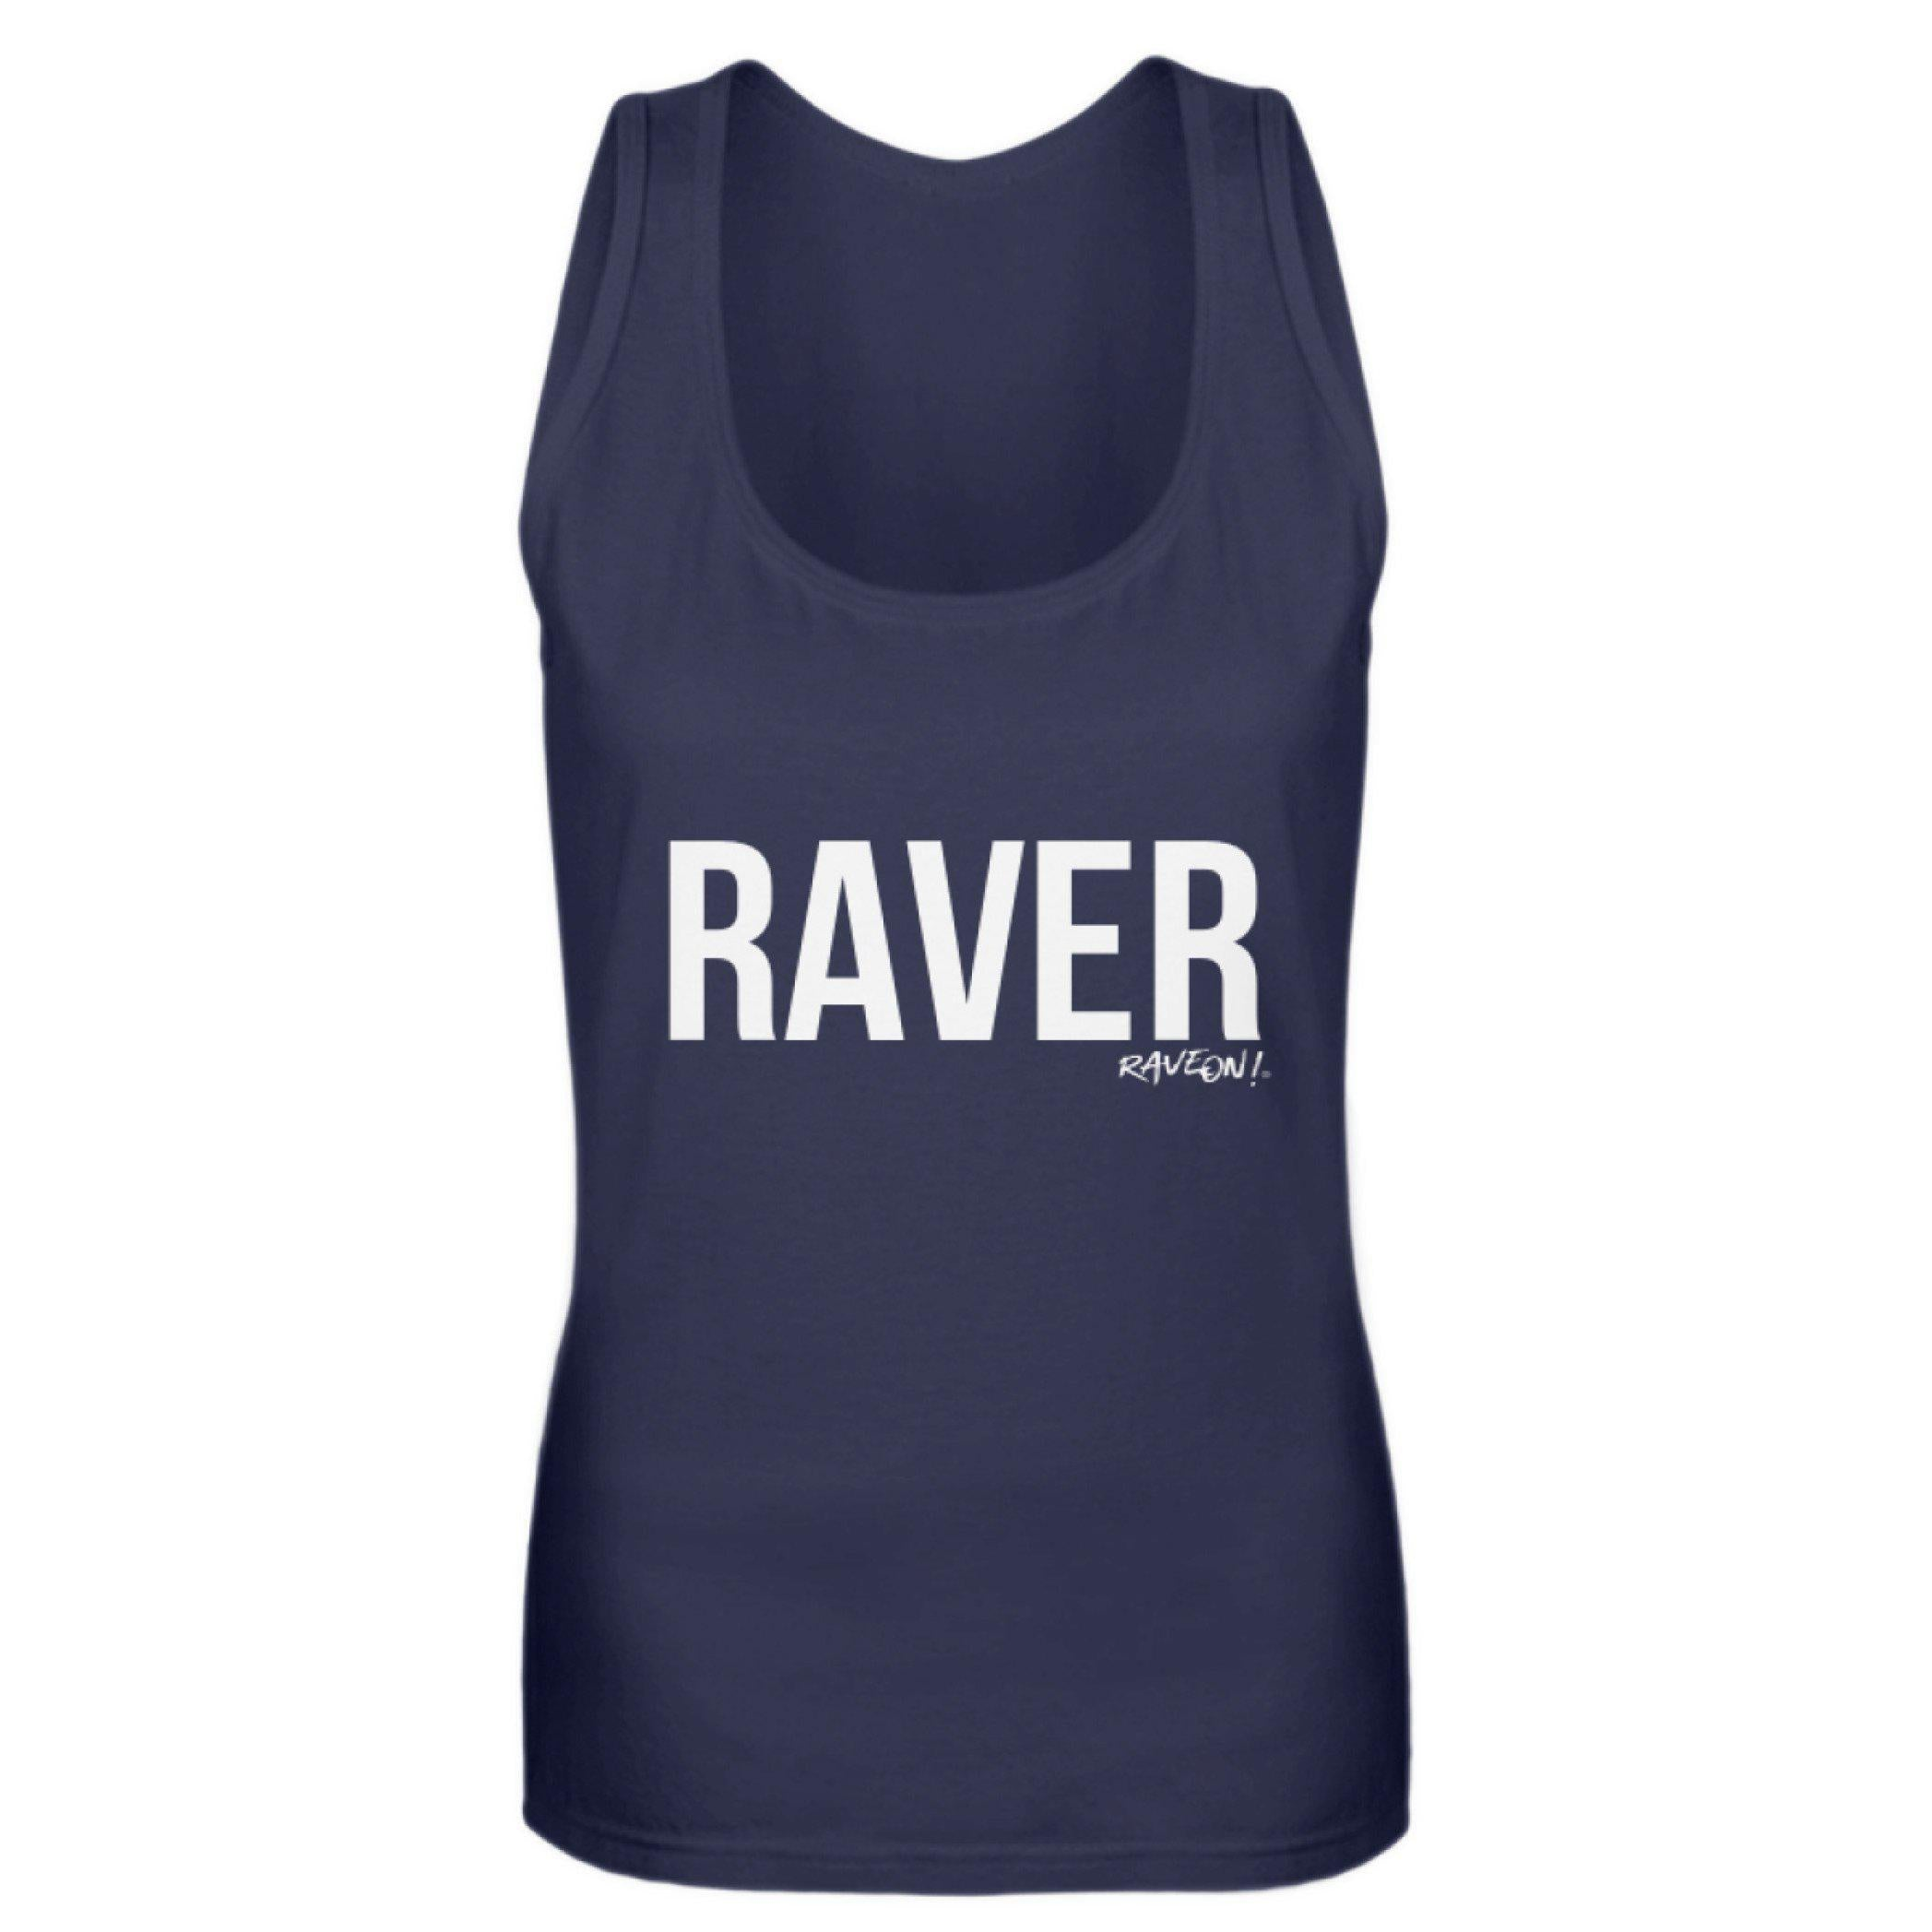 RAVER Girls Tanktop by Rave On!® Damen Tank-Top - Rave On!® der Club & Techno Szene Shop für Coole Junge Mode Streetwear Style & Fashion Outfits + Sexy Festival 420 Stuff